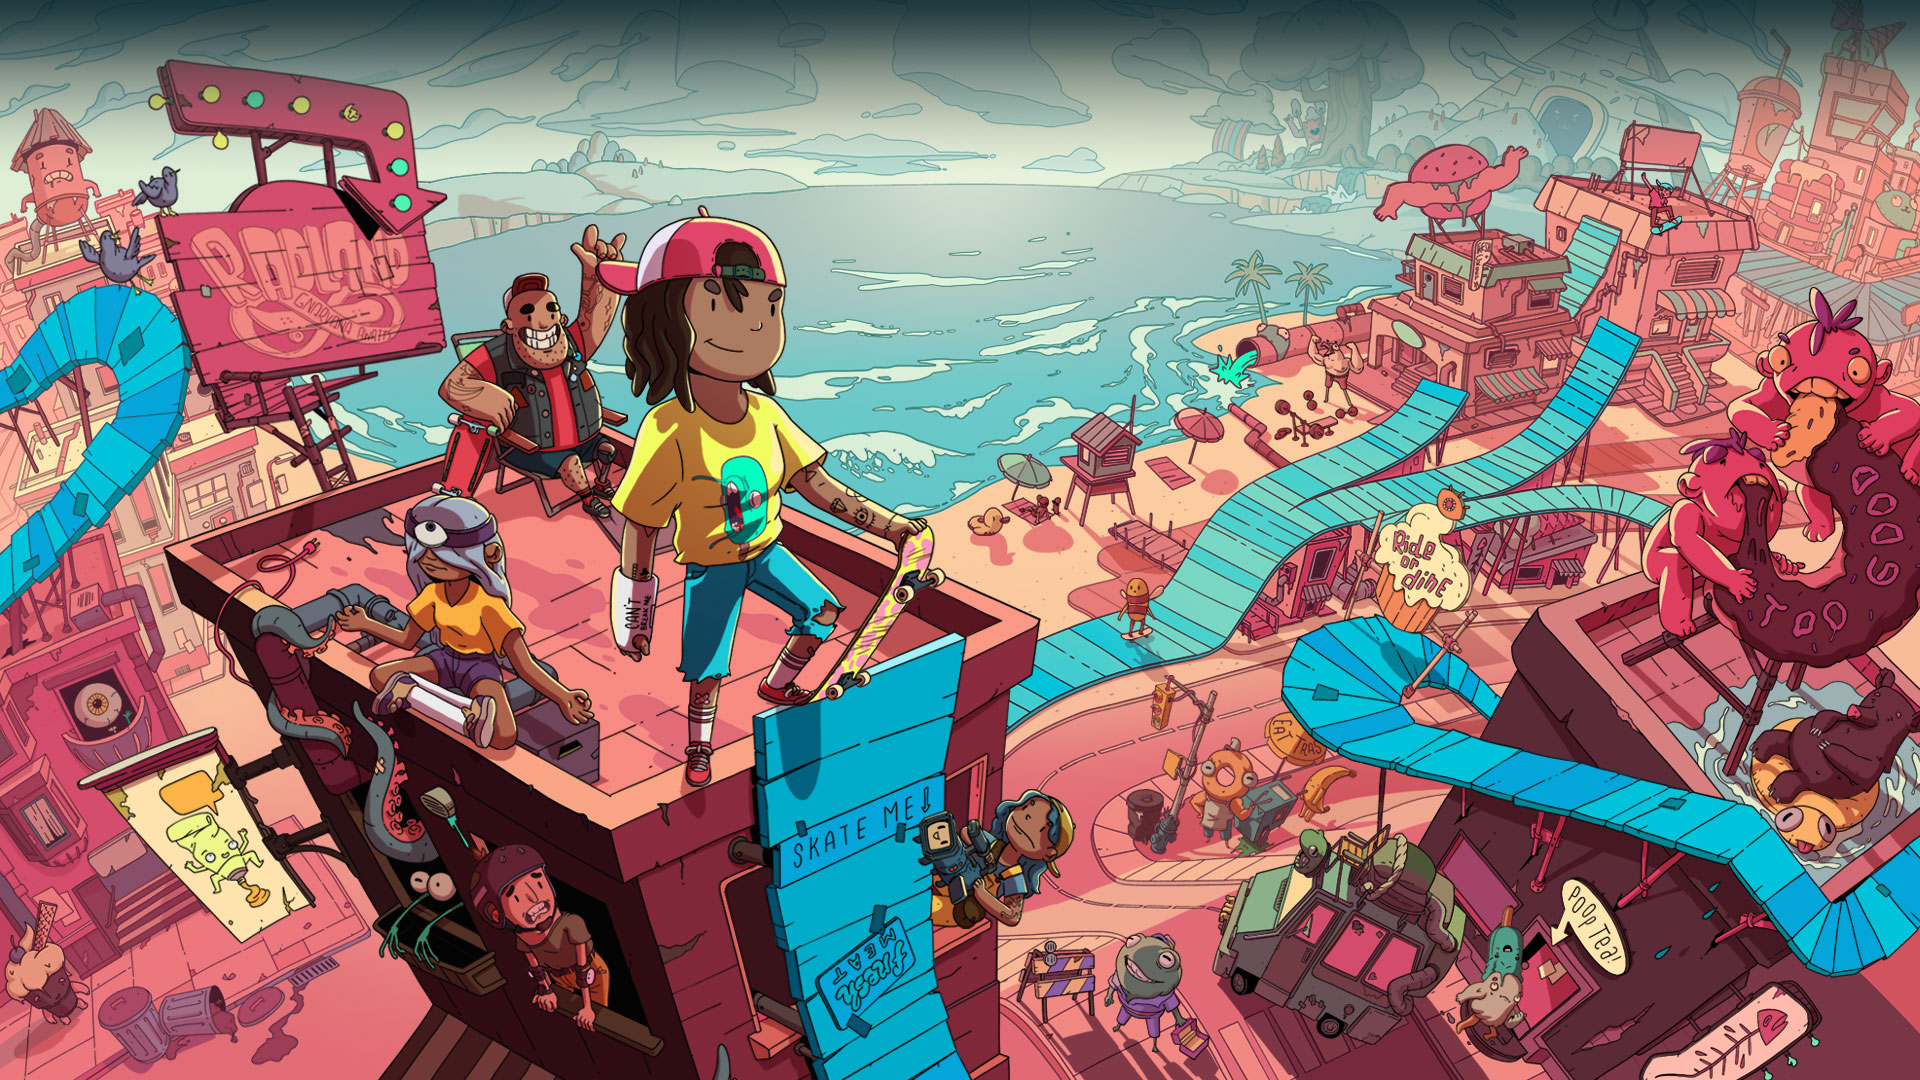 Several characters on top of a tall skate ramp with a town below.